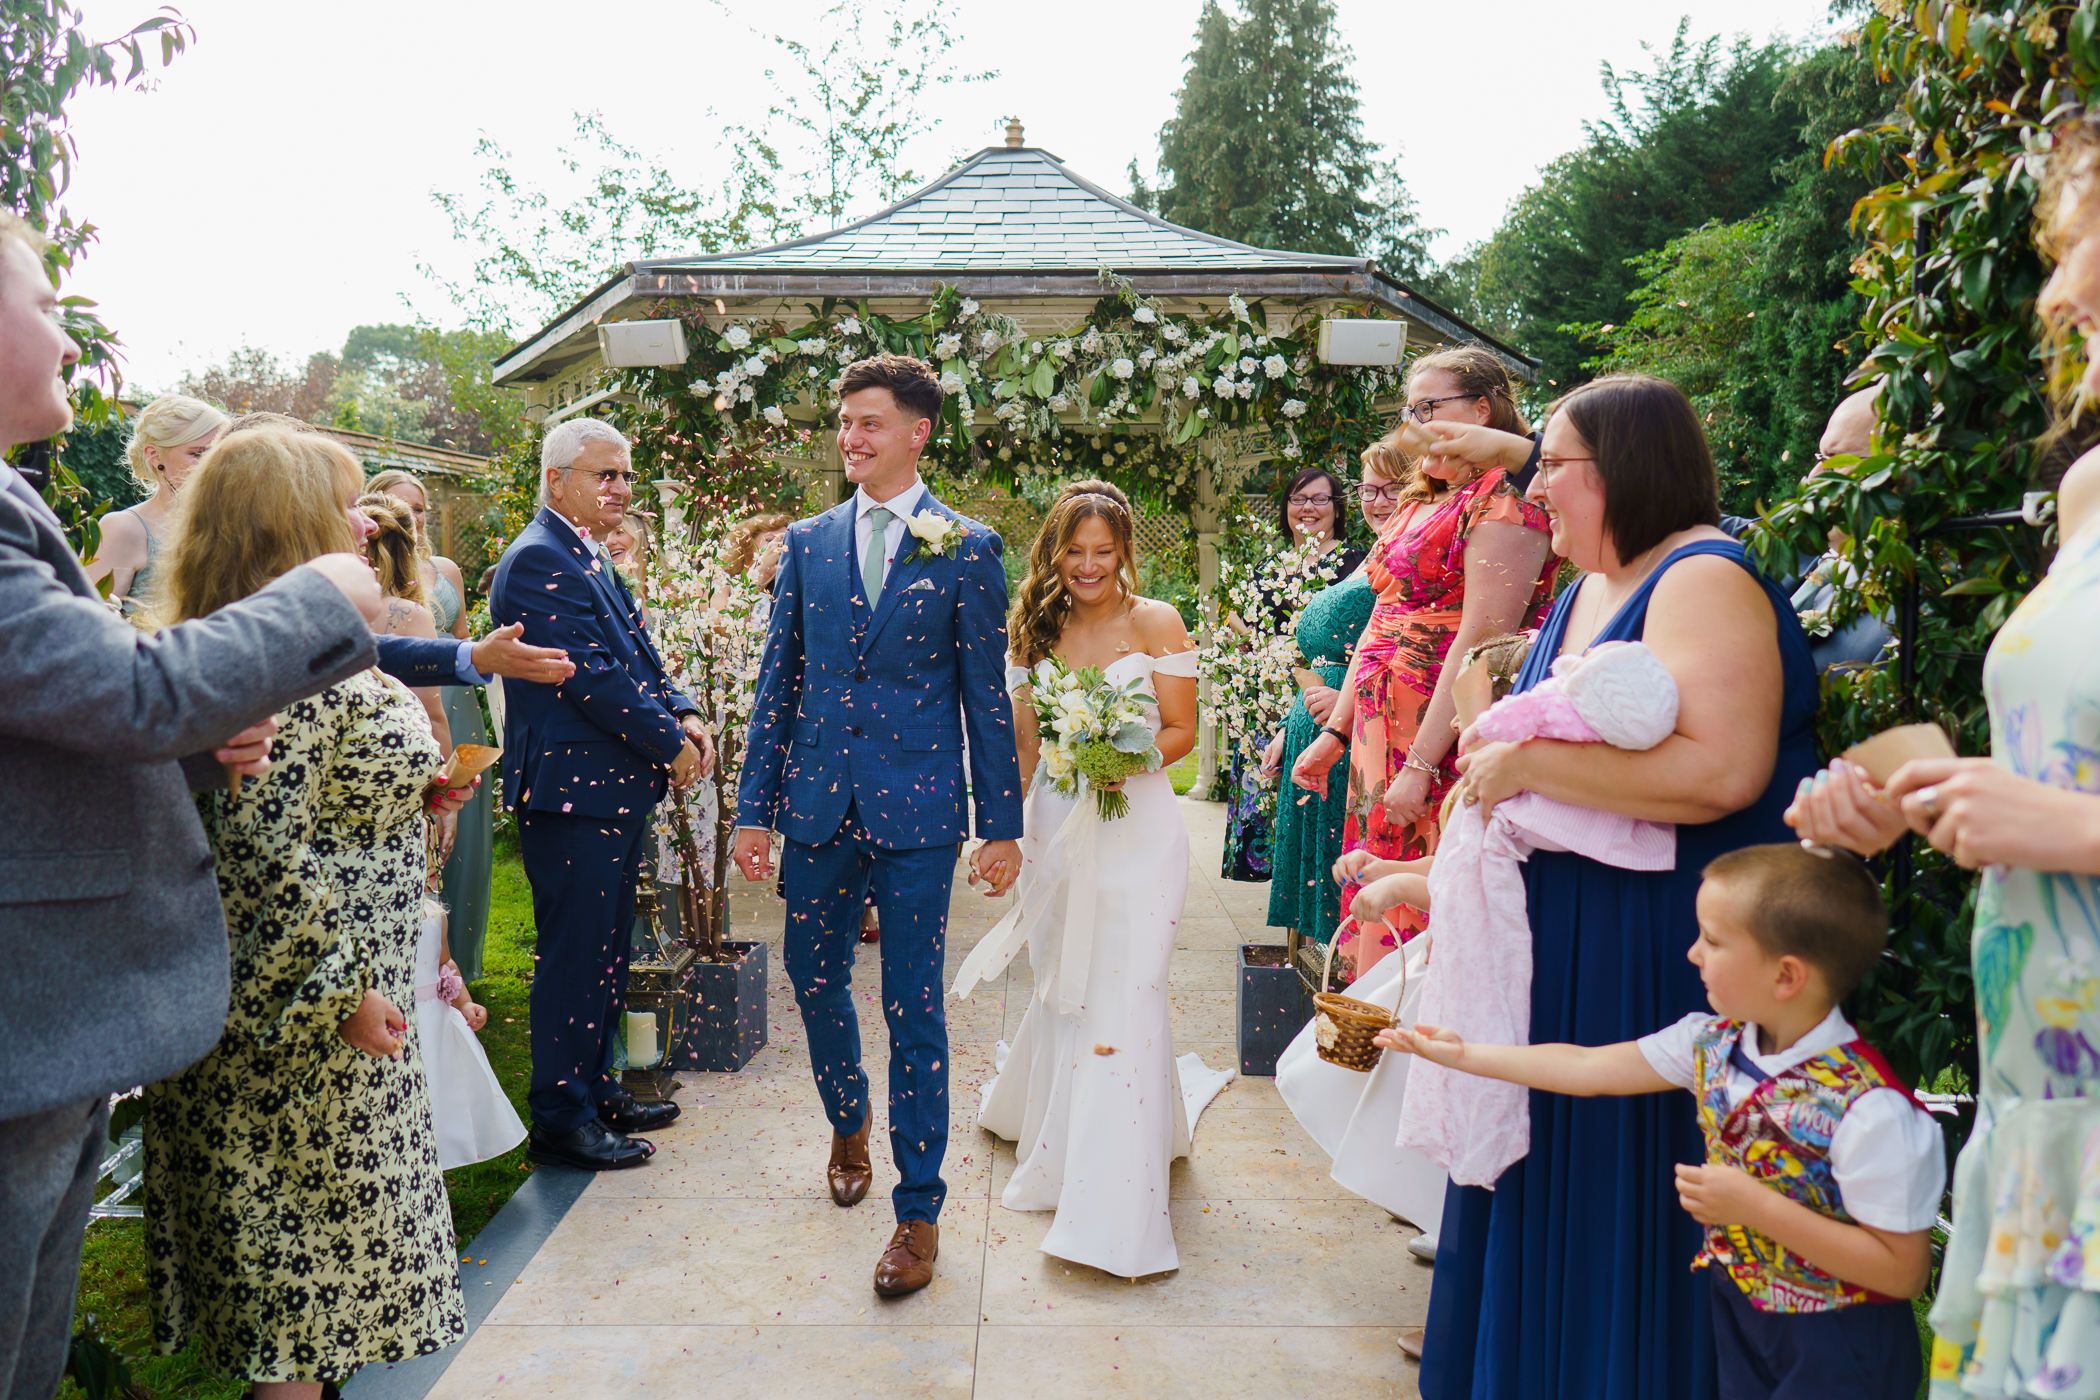 brdie and groom walking down the outdoor ceremony aisle with guests trhowing confetti